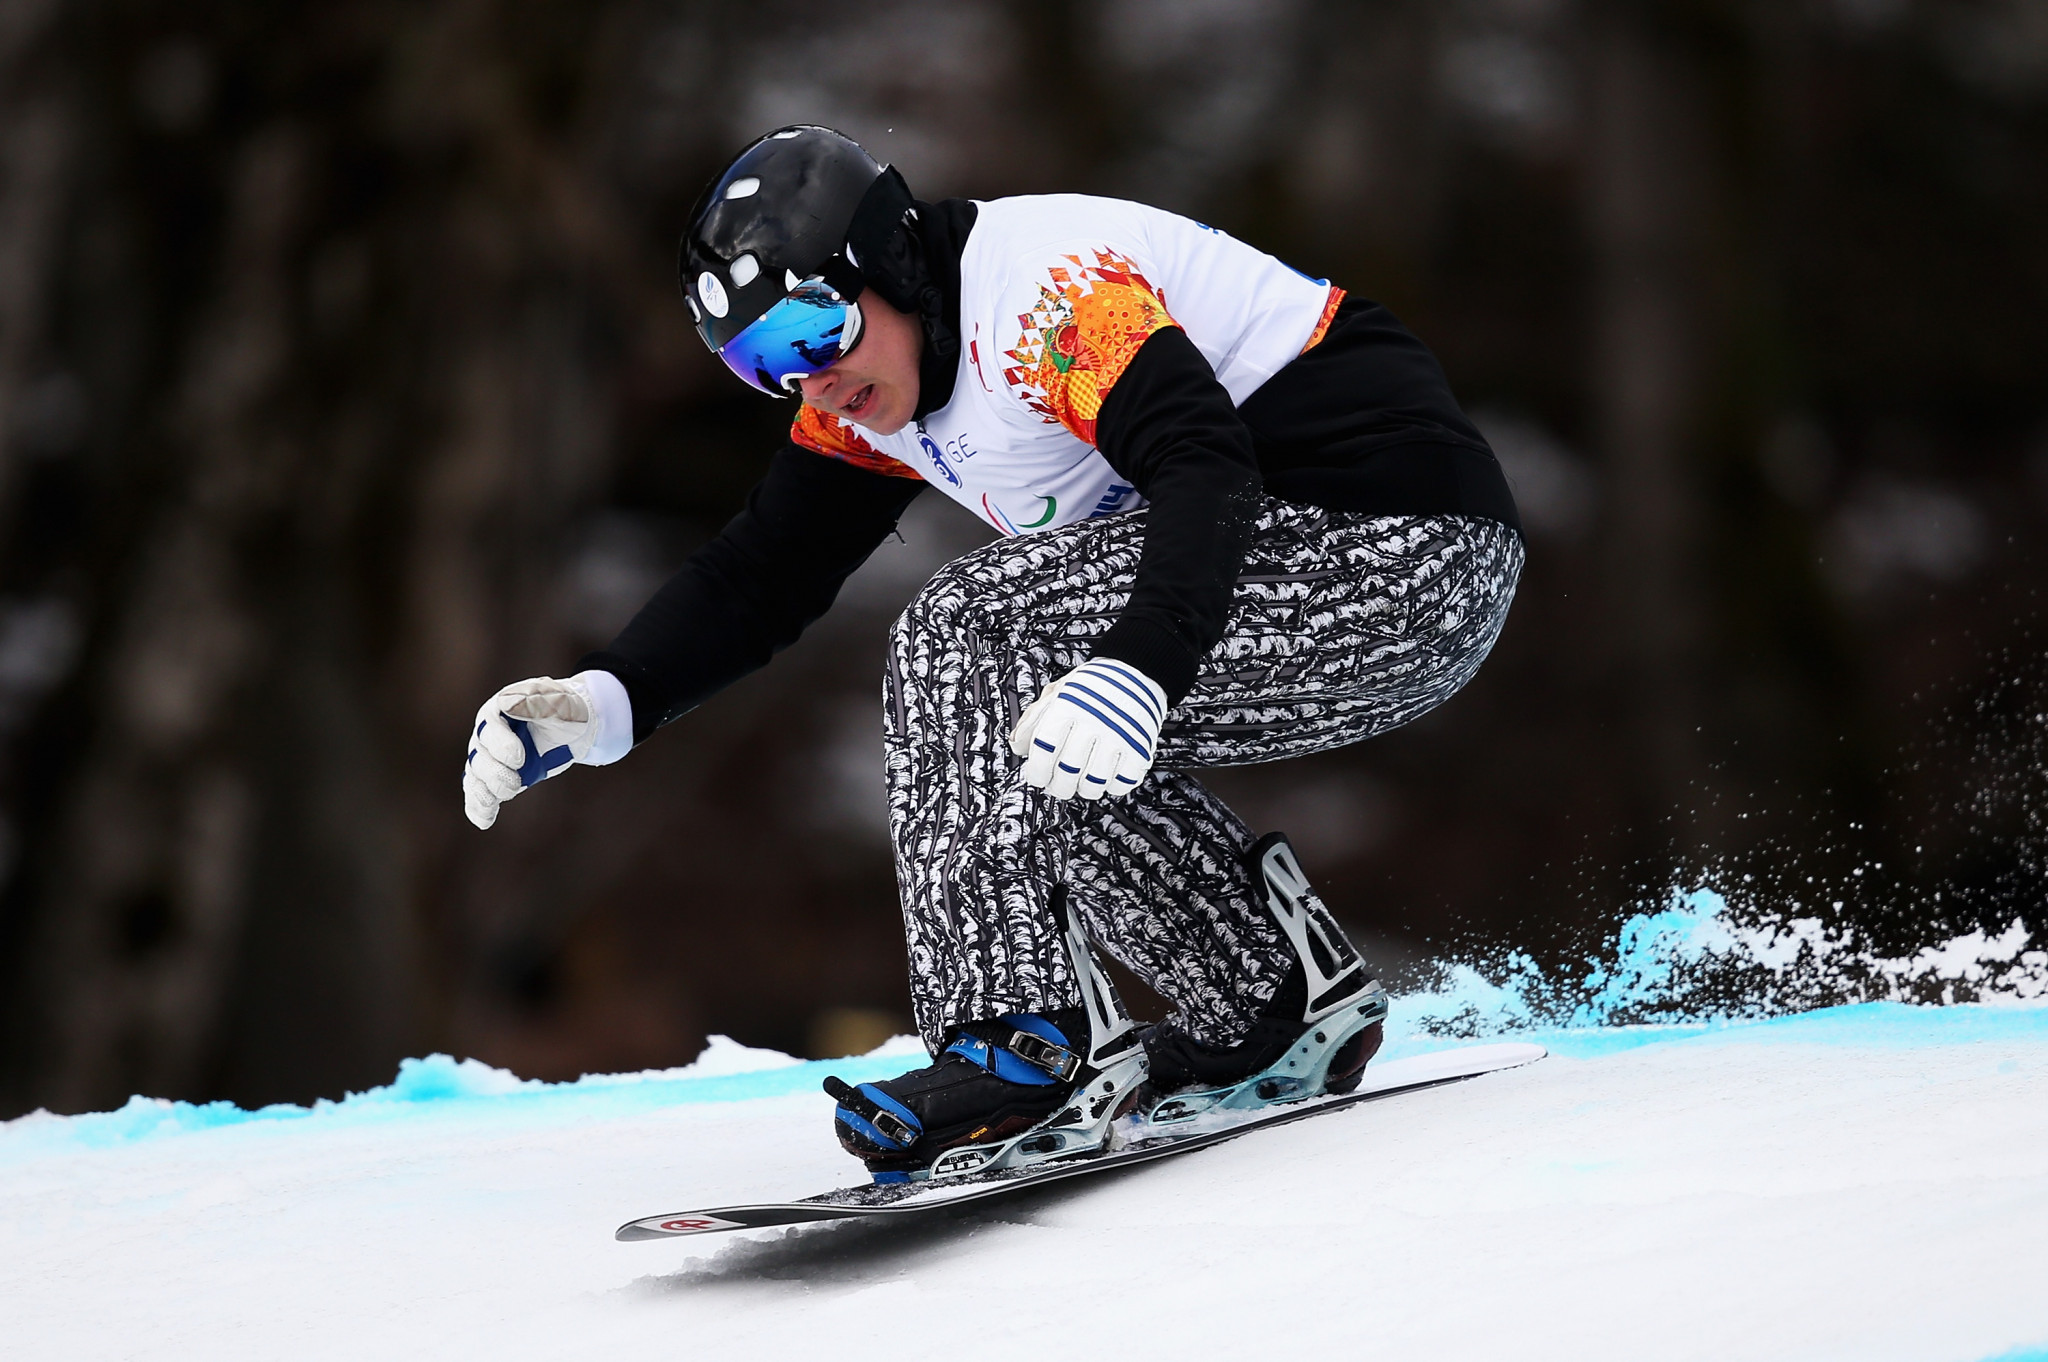 Finland target three medals at Pyeongchang 2018 Paralympics, with Suur-Hamari leading charge